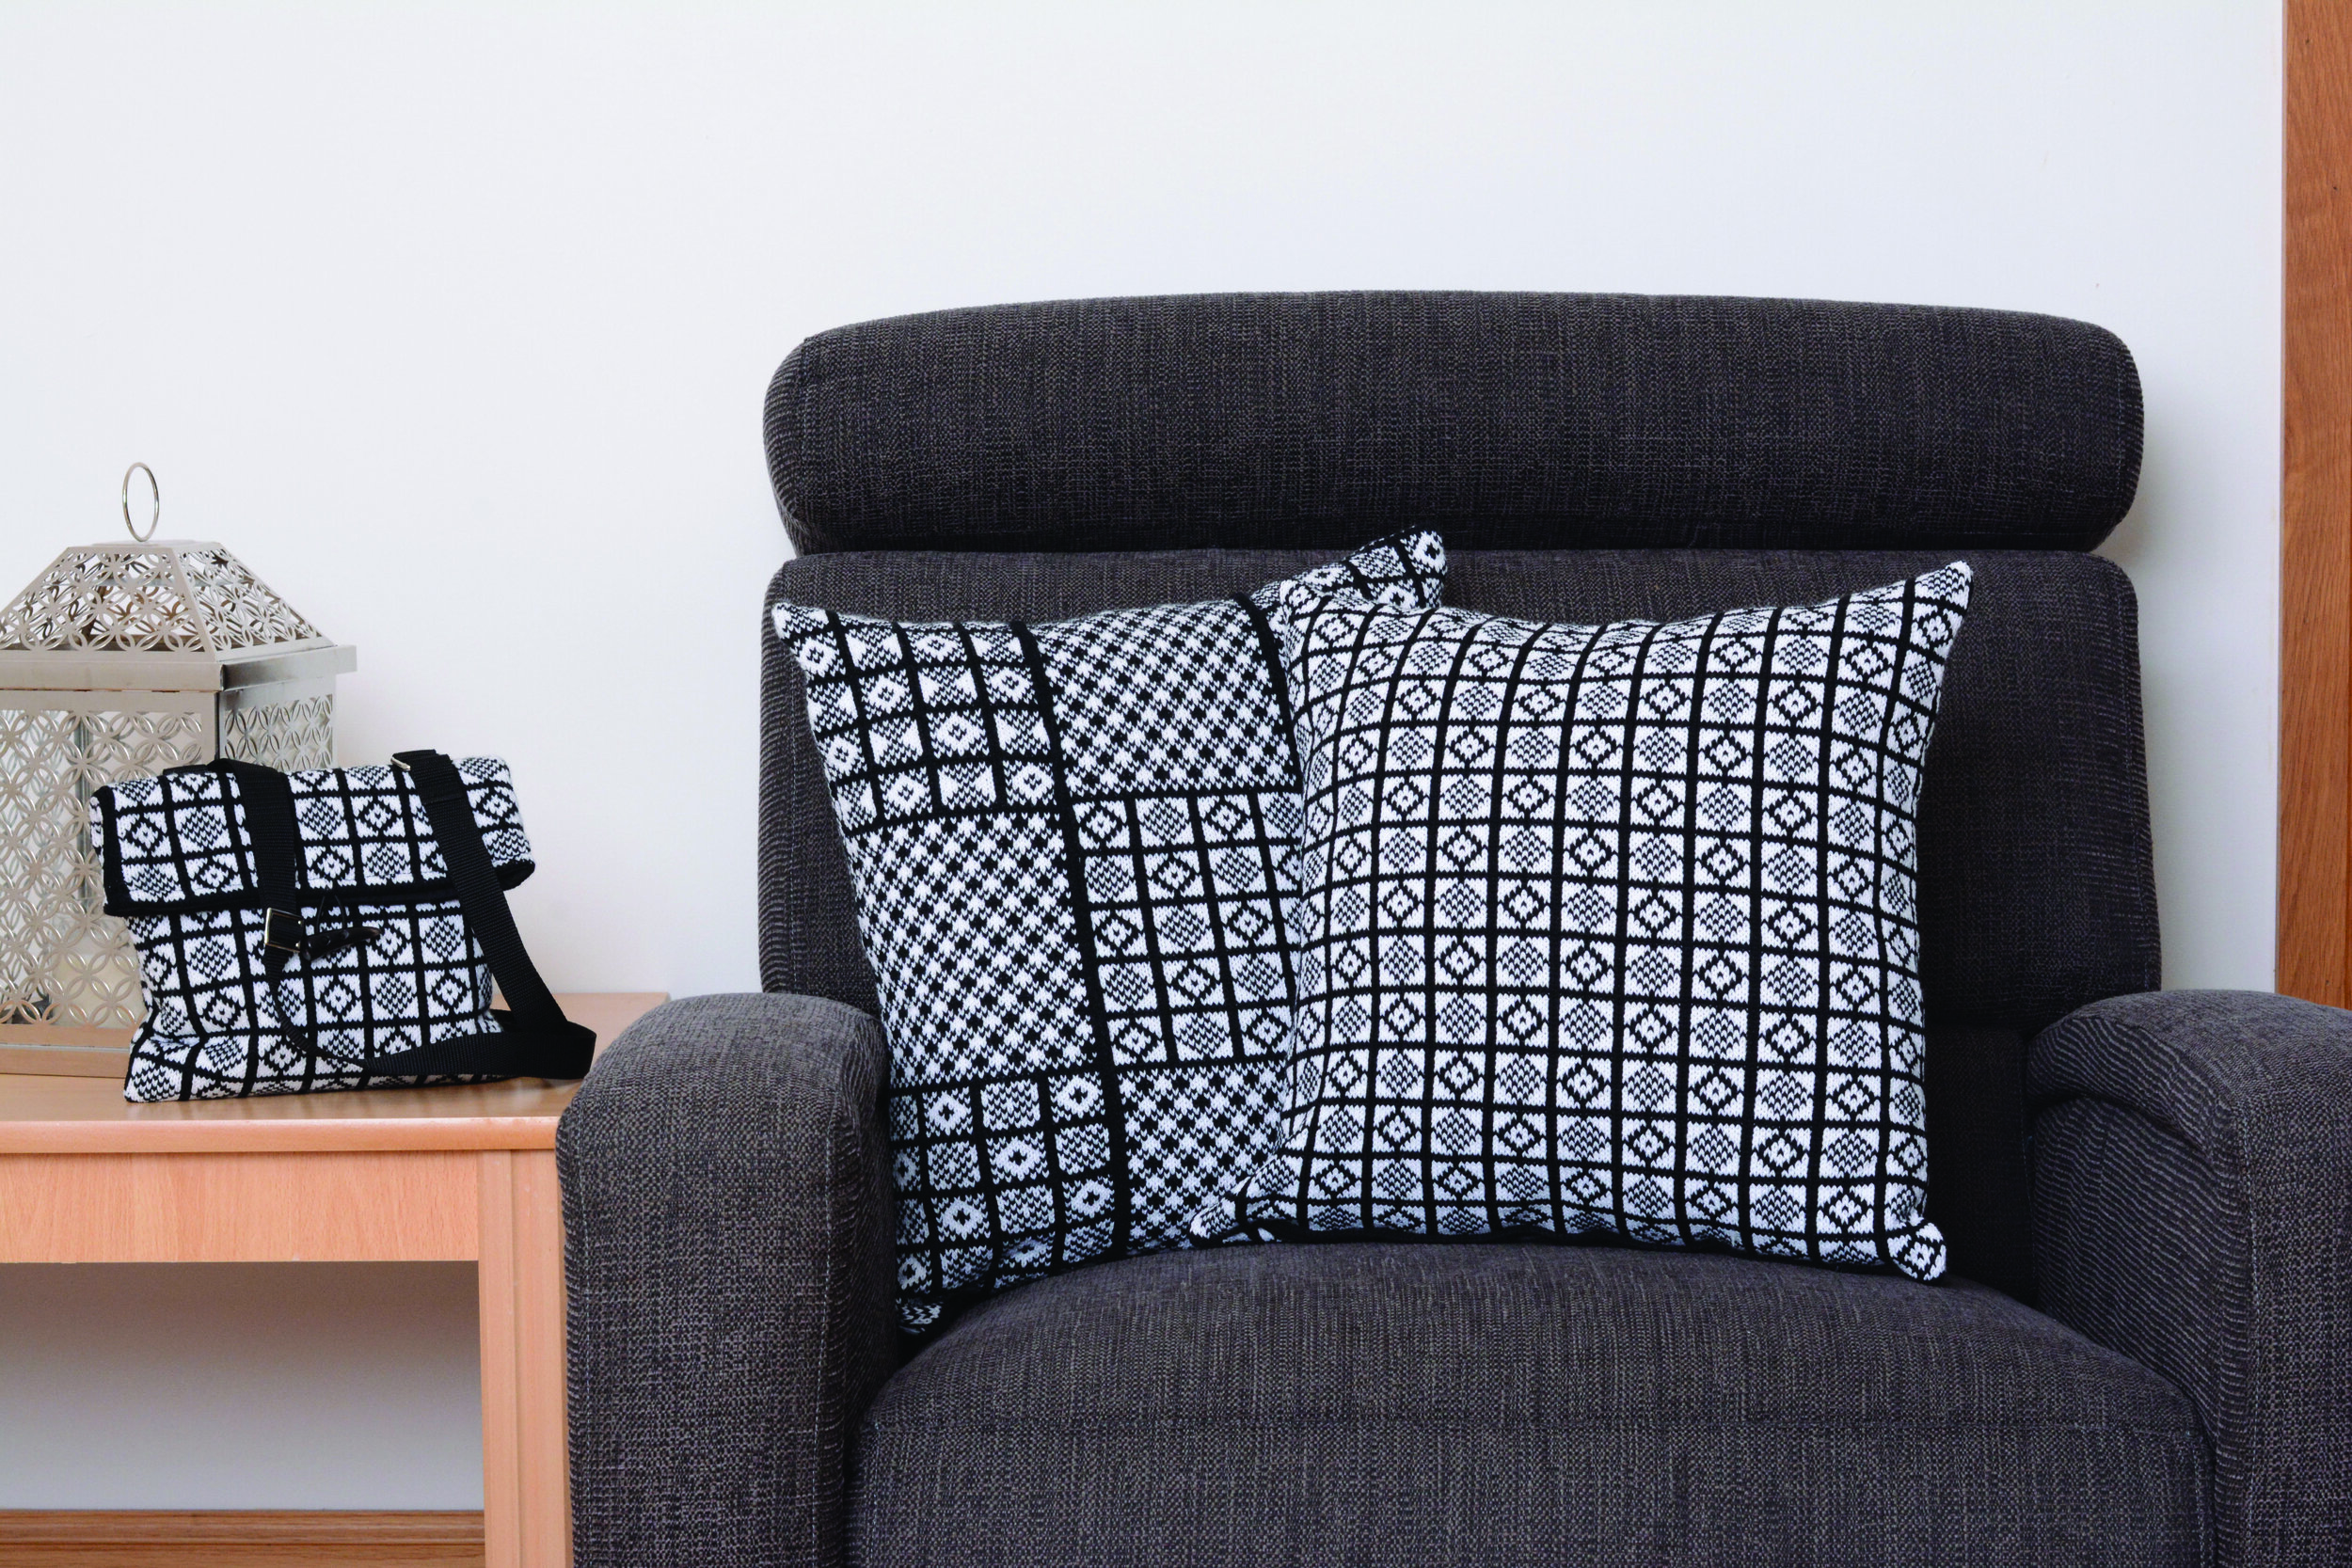 (L) Handmade Duke pattern bag in black and white.  (M) Black and white acrylic machine knitted Sanquhar Pattern Patchwork cushion. (R) Black and white acrylic machine knitted Sanquhar Pattern Duke cushion.